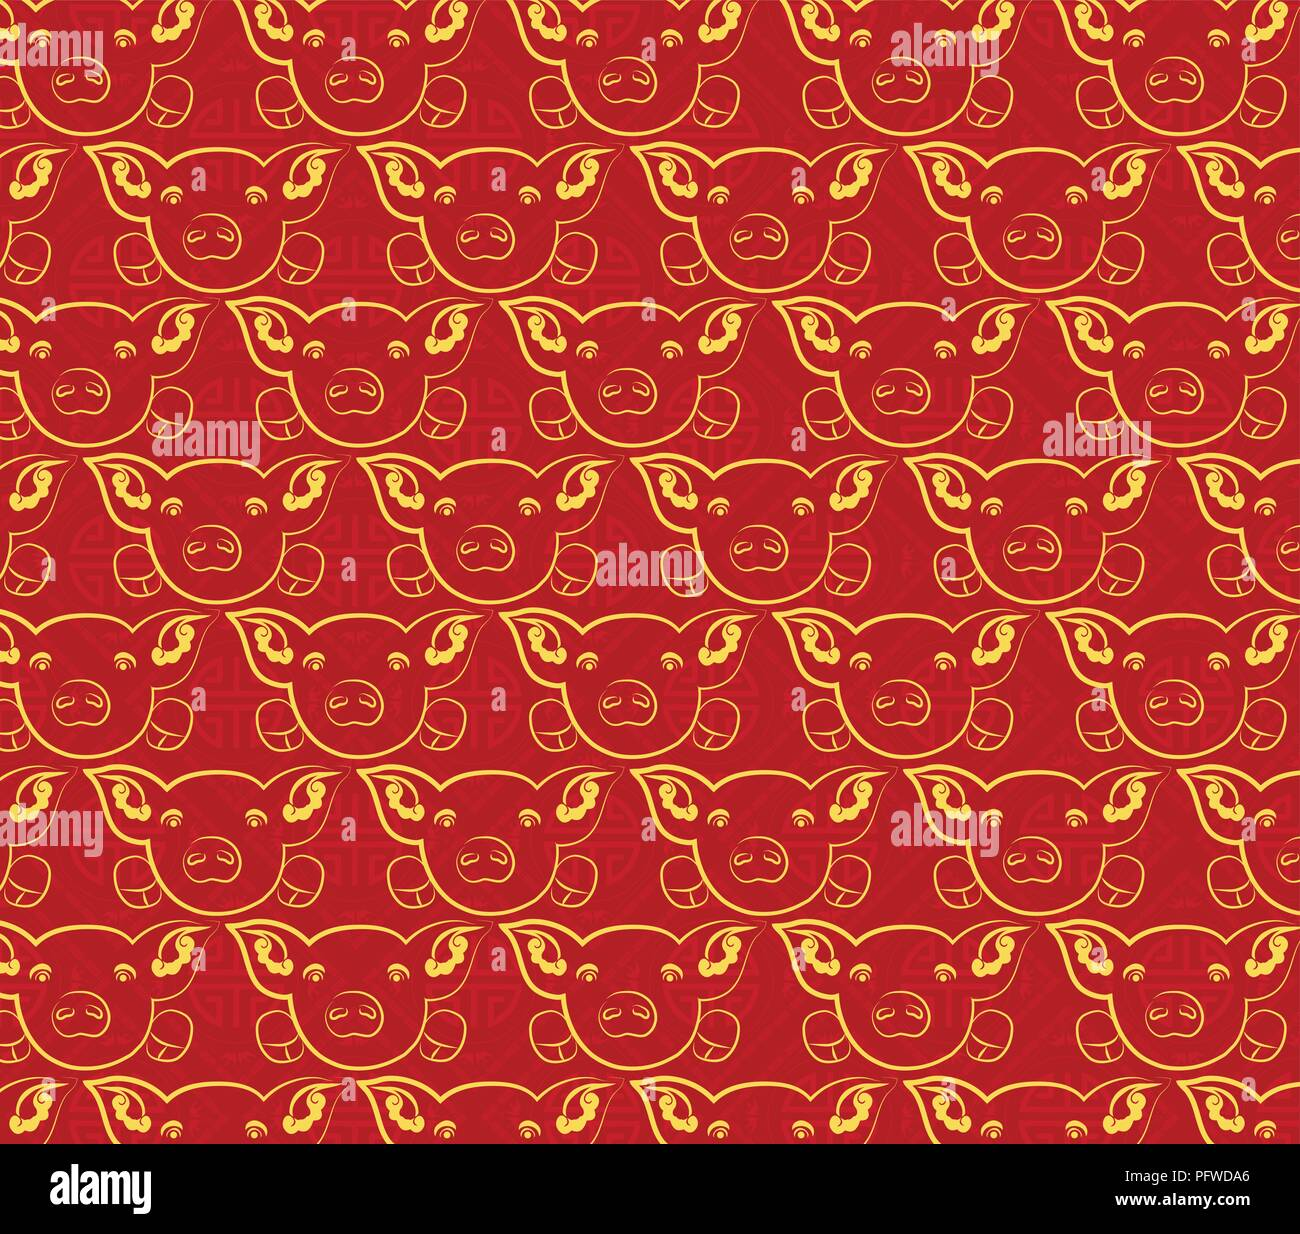 Chinese new year pattern background year of the pig